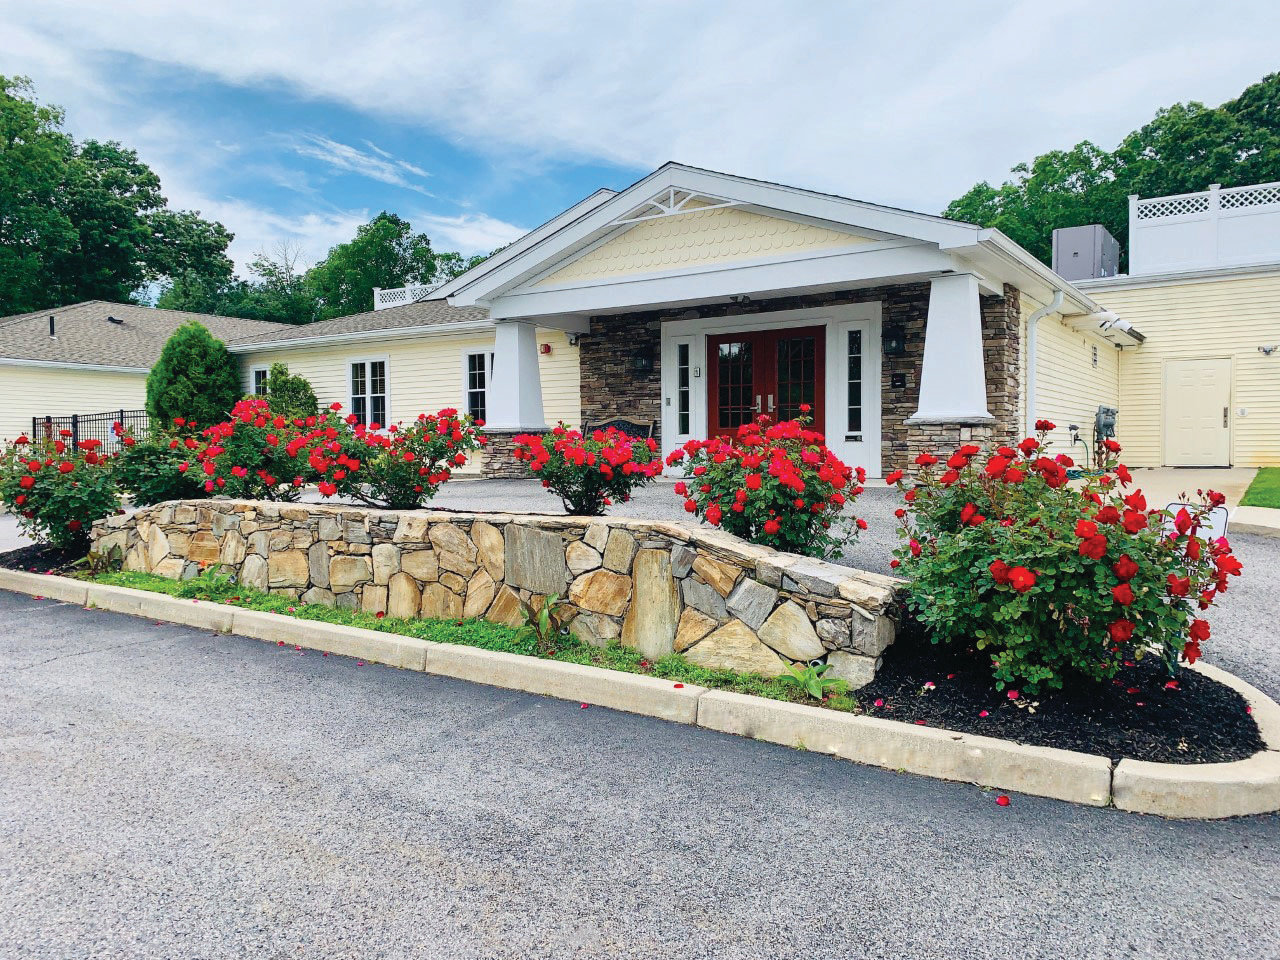 Briarcliffe Gardens Memory Care Assisted Living Residence on Old Pocasset Road in Johnston provides compassionate care and research-backed services to those with Alzheimer's Disease, dementia and other memory-loss conditions.